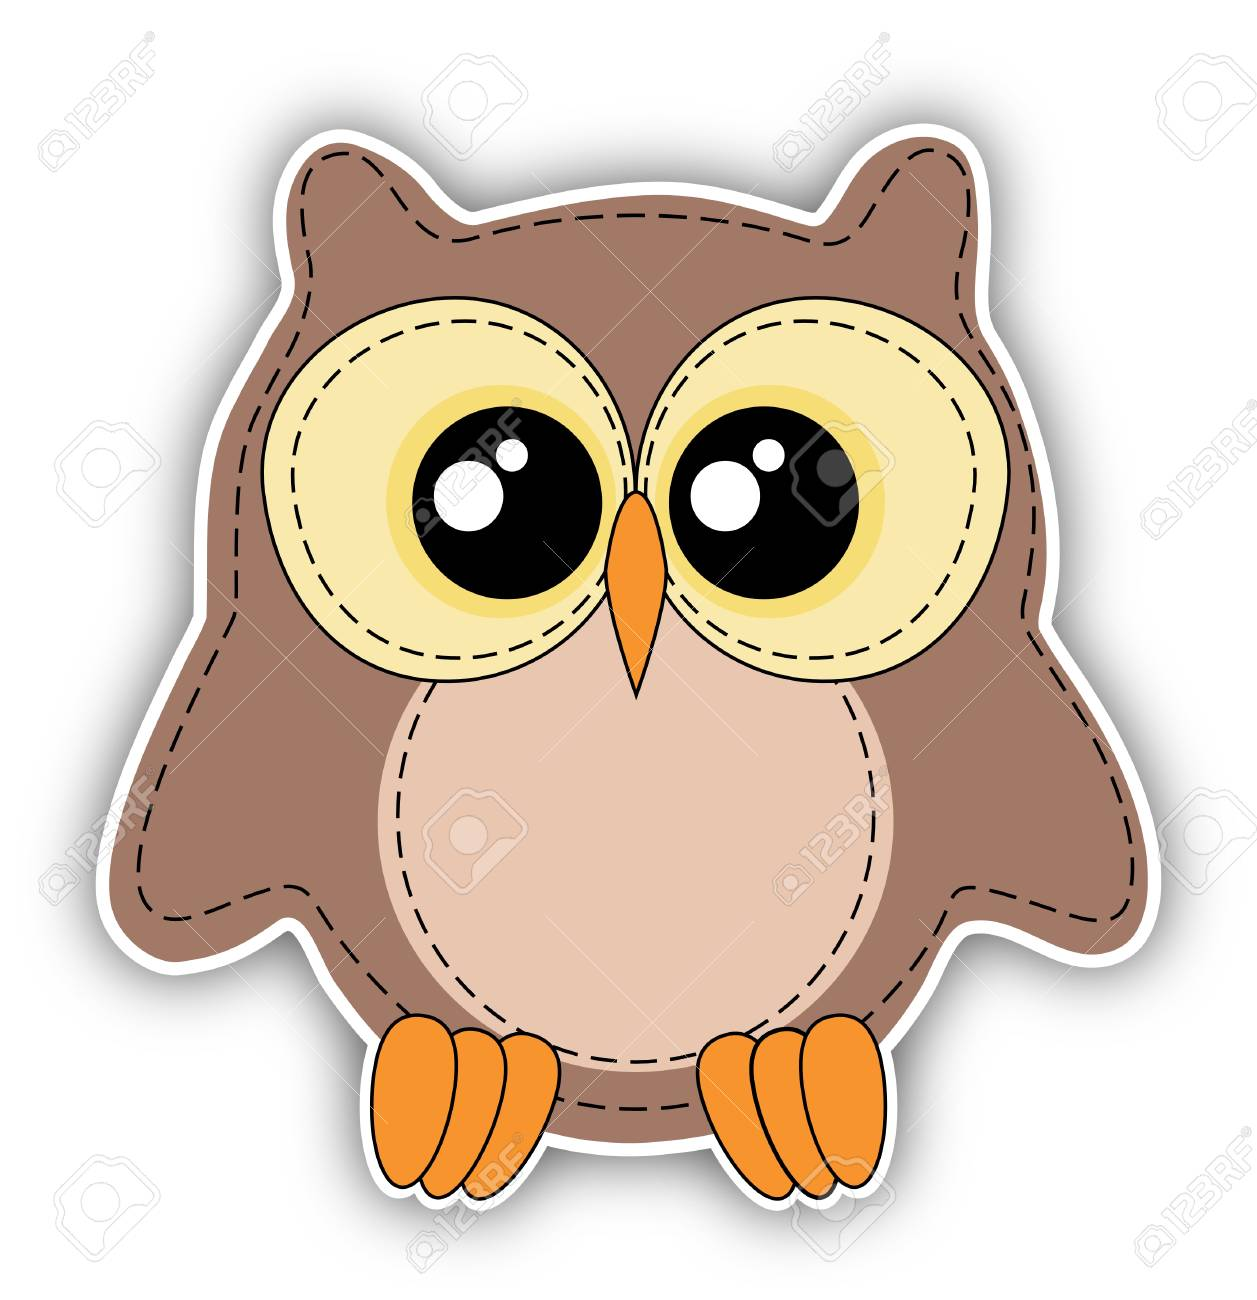 cute owl label on white background - stitching style stock photo